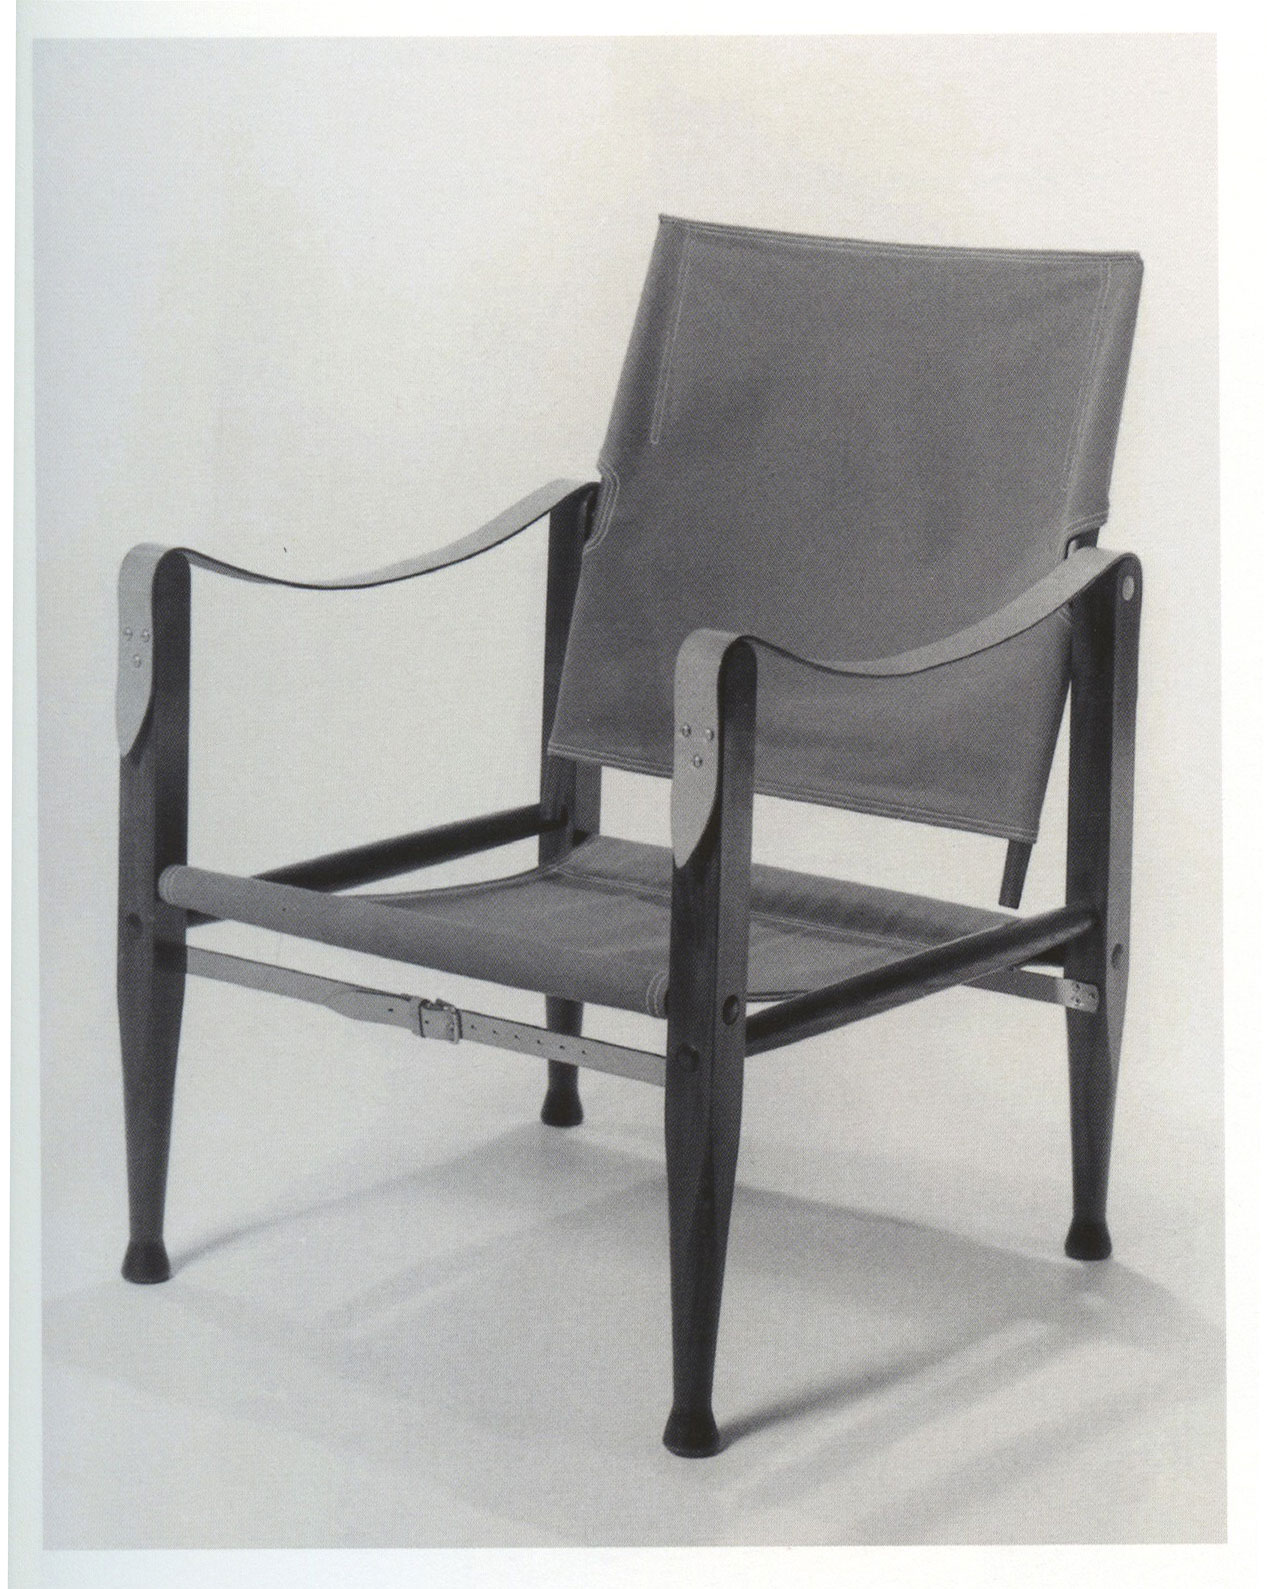 Safari Chair Kaare Klint Safari Chairs Early And Later Lost Art Press